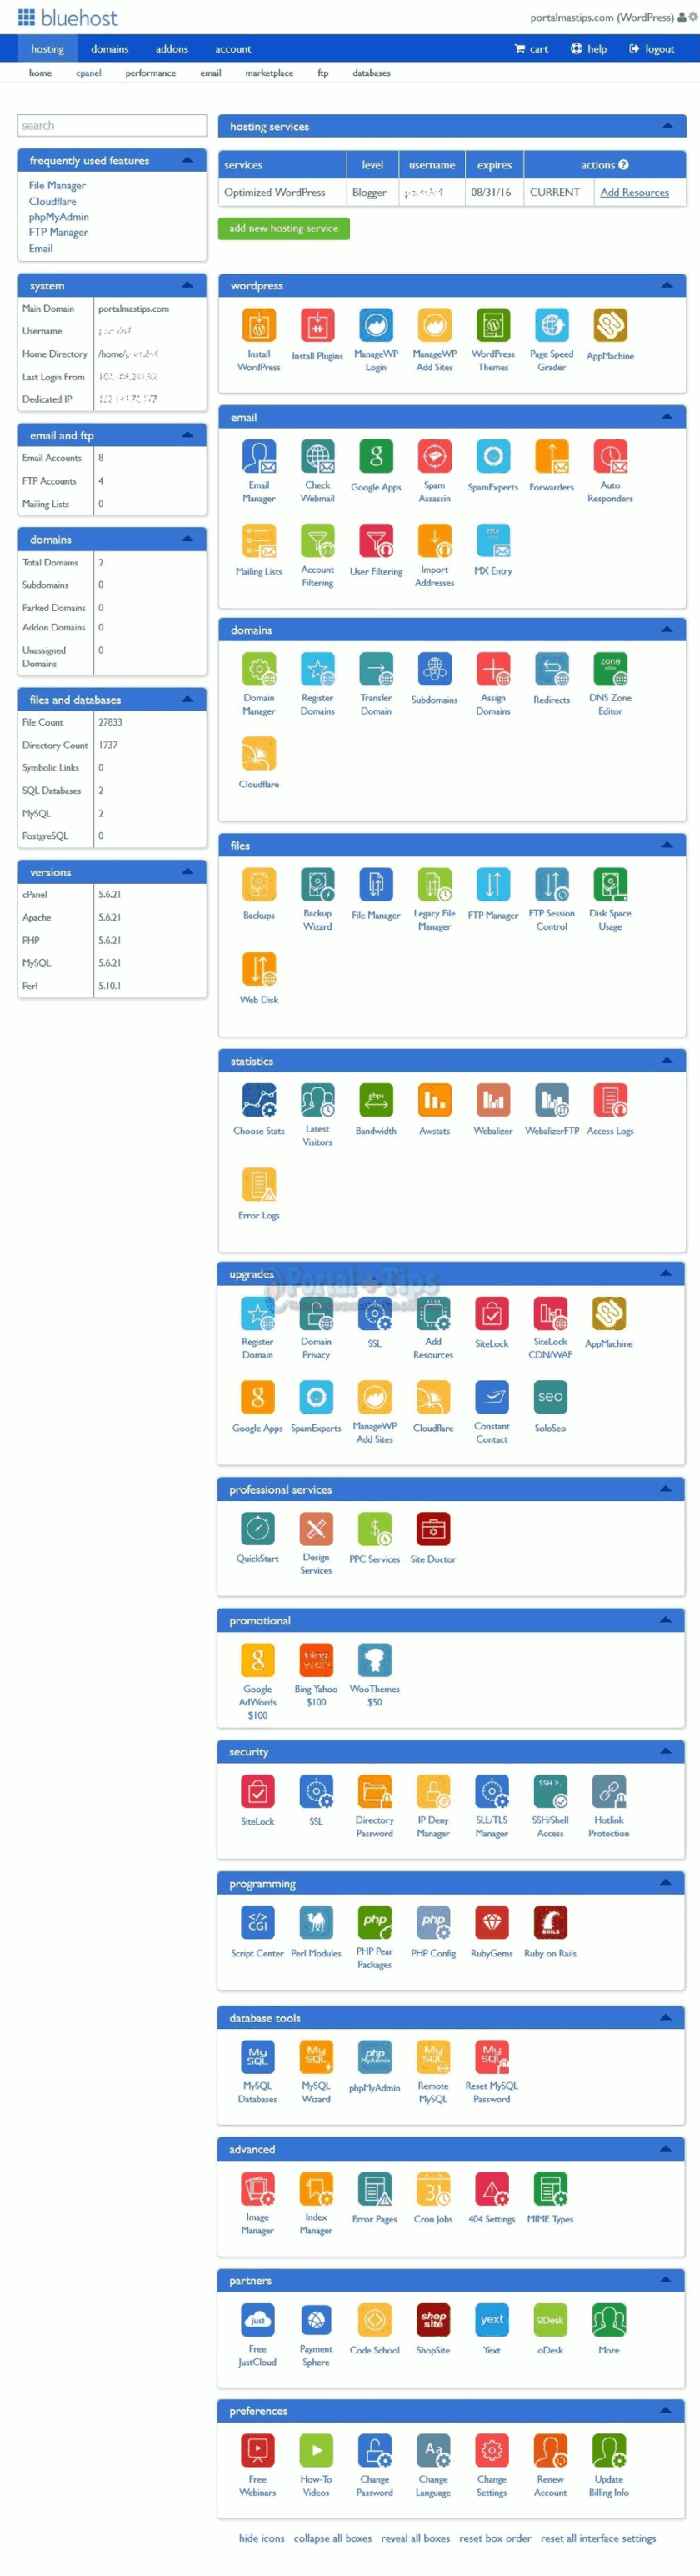 bluehost-cpanel-completo